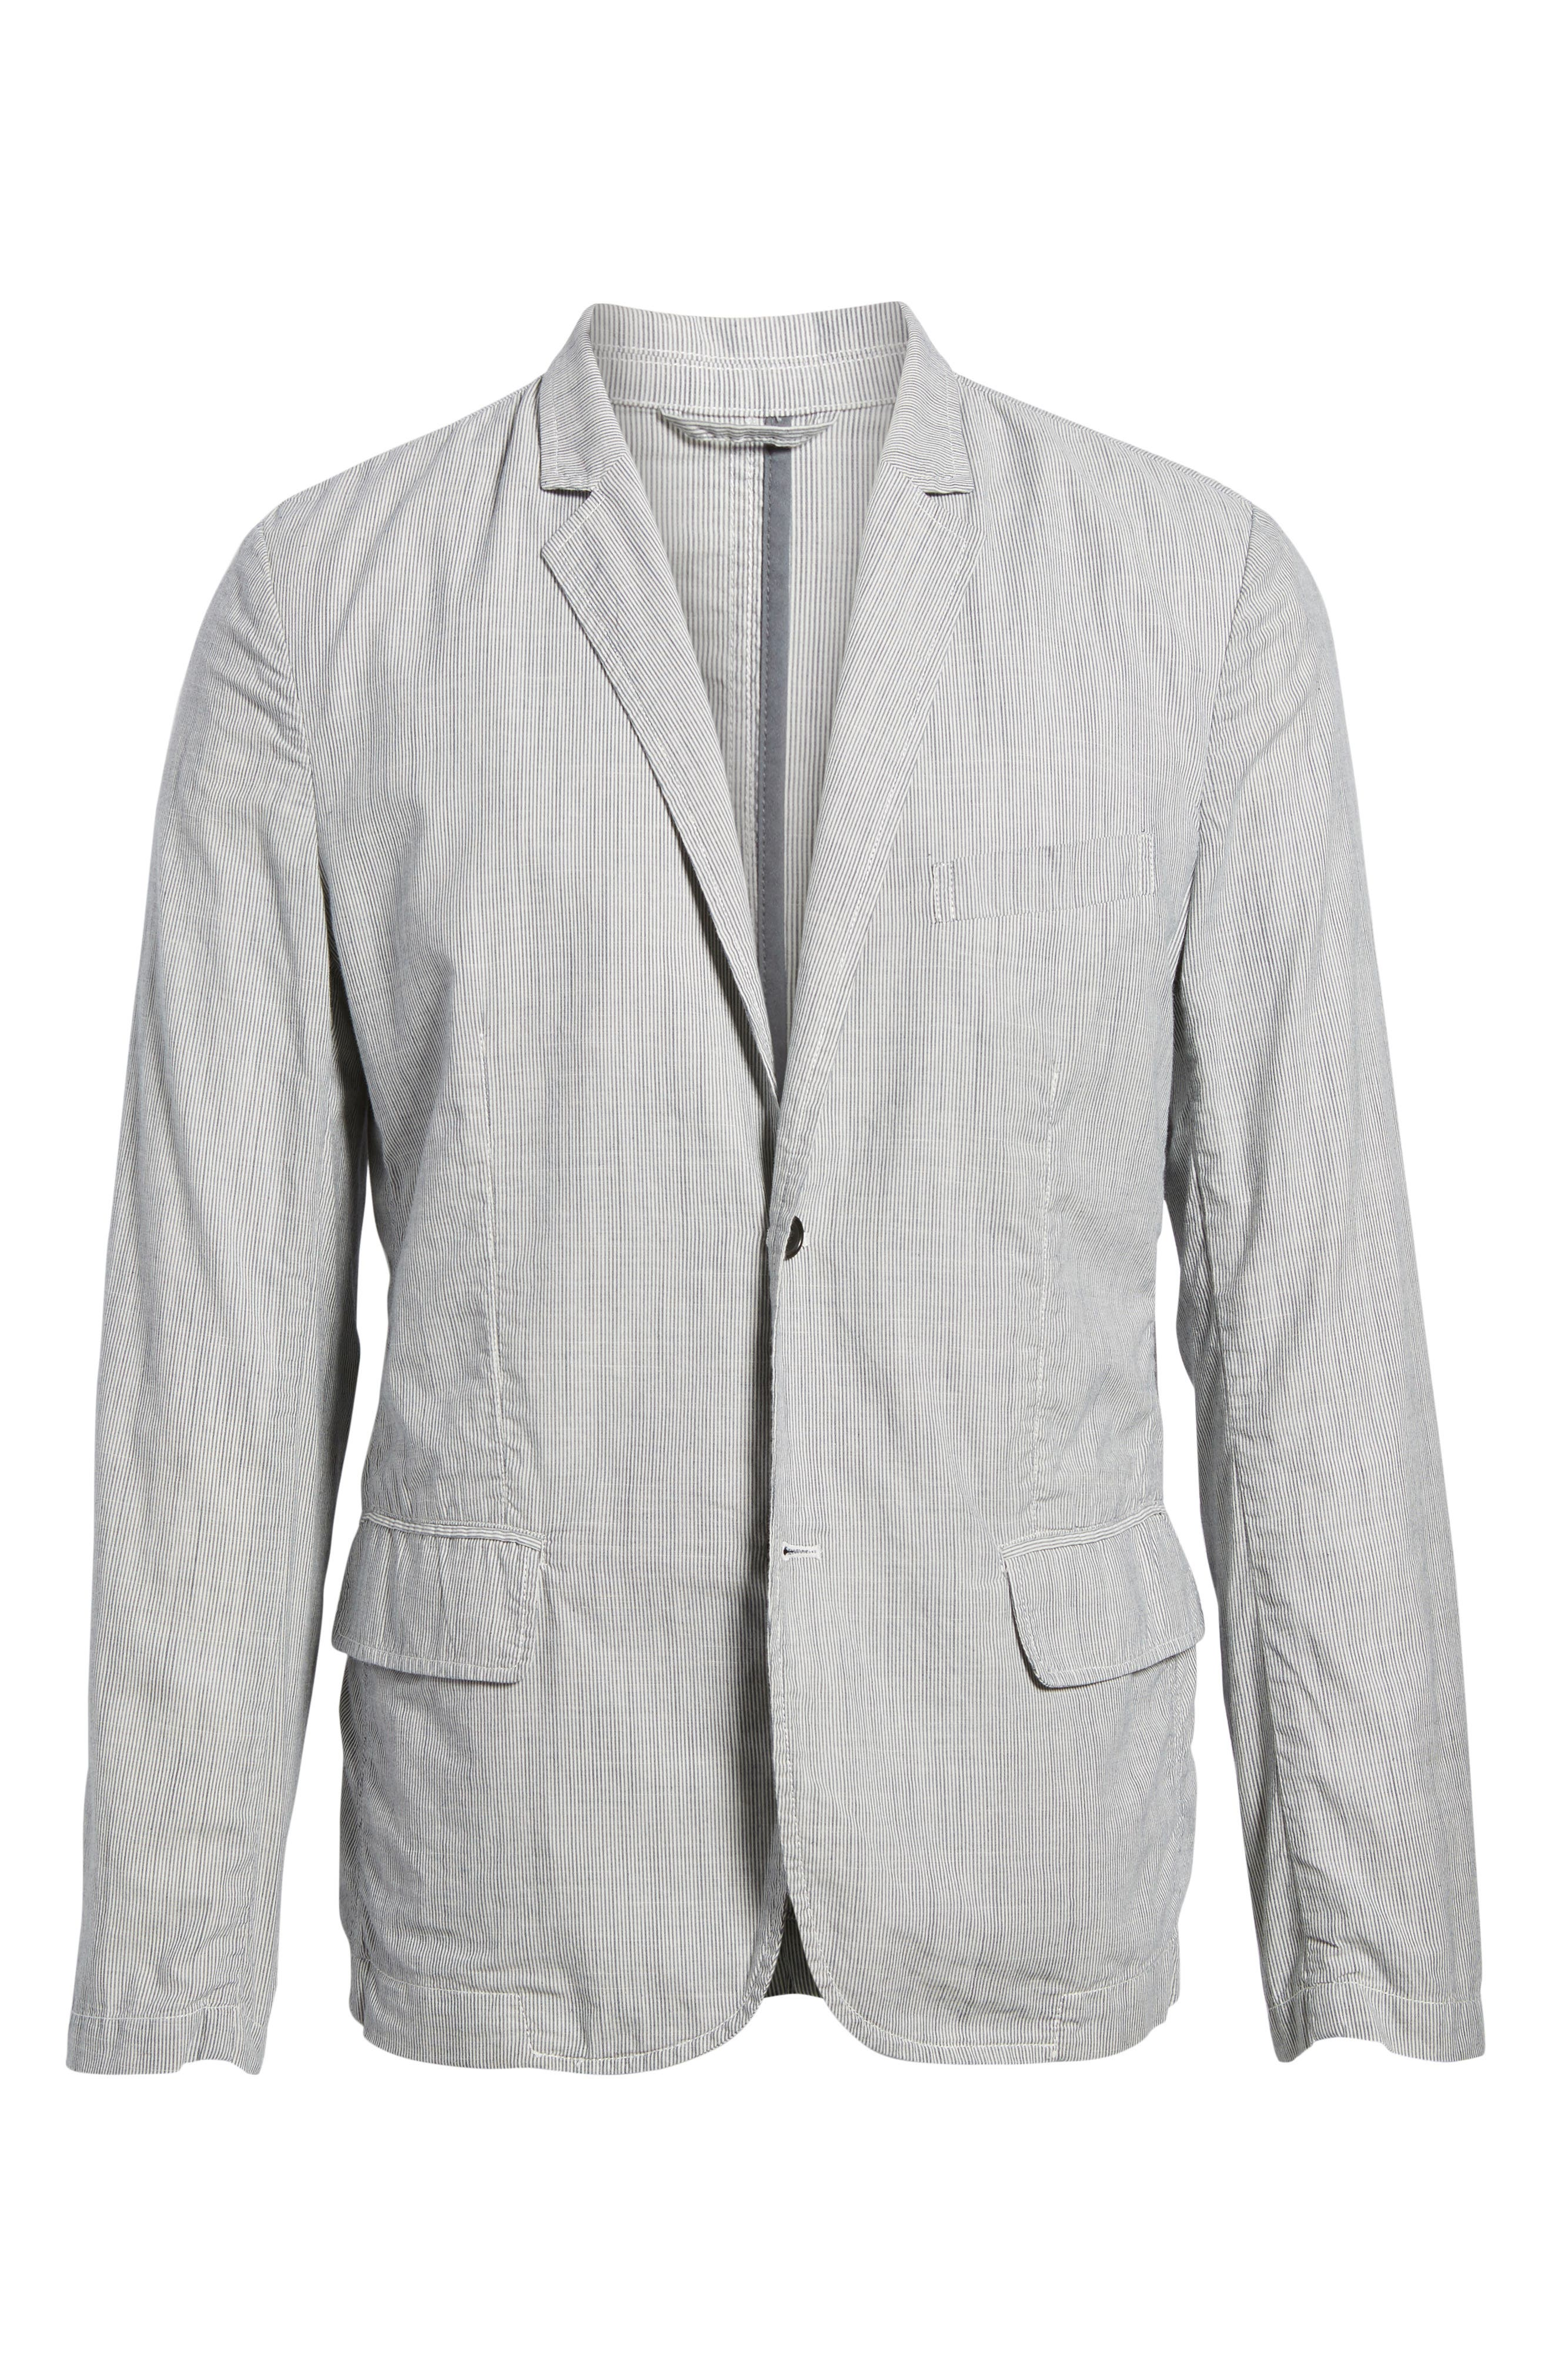 Stripe Cotton Blazer,                             Alternate thumbnail 6, color,                             True Gray